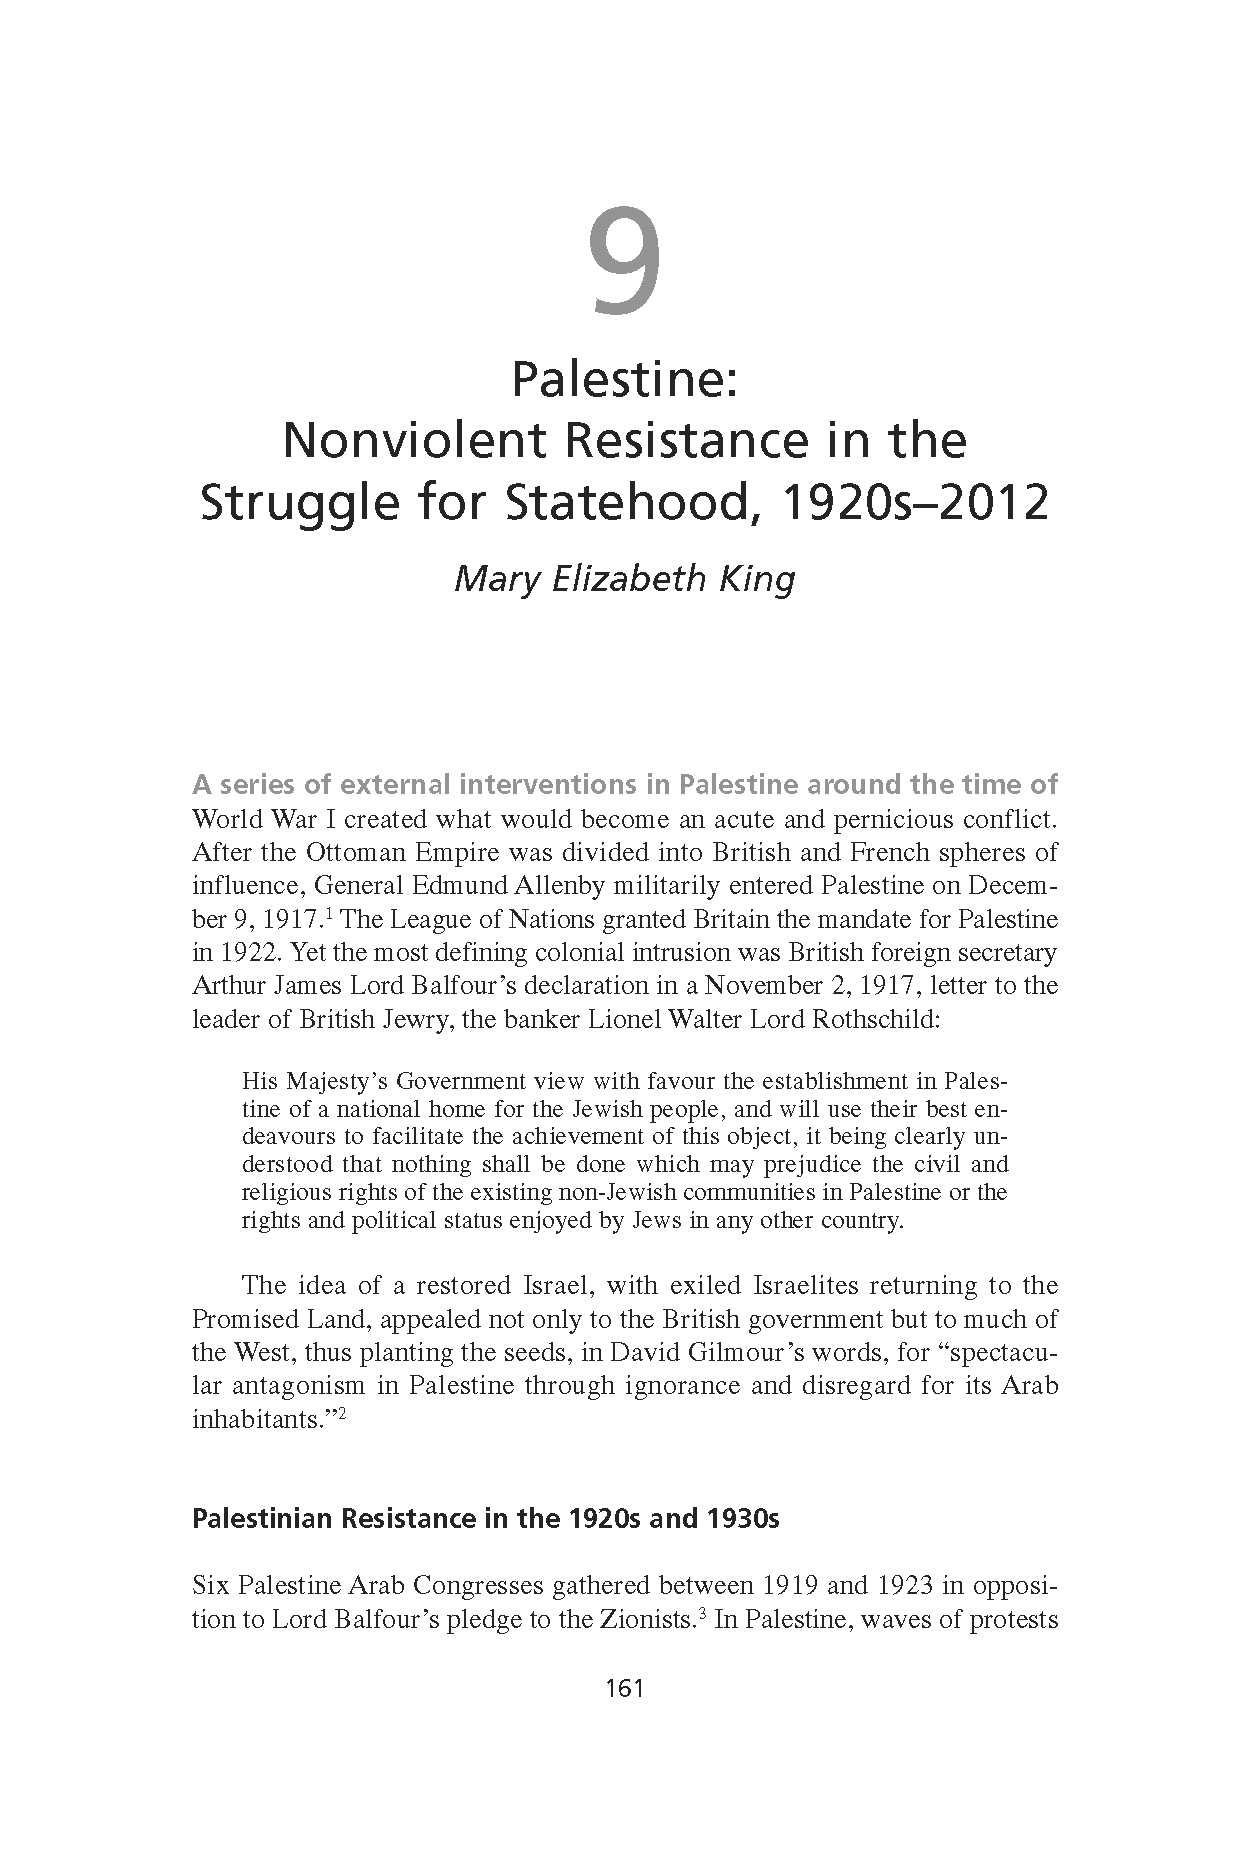 Palestine: Nonviolent Resistance in the Struggle for Statehood, 1920s-2012 (Chapter 9 from 'Recovering Nonviolent History')